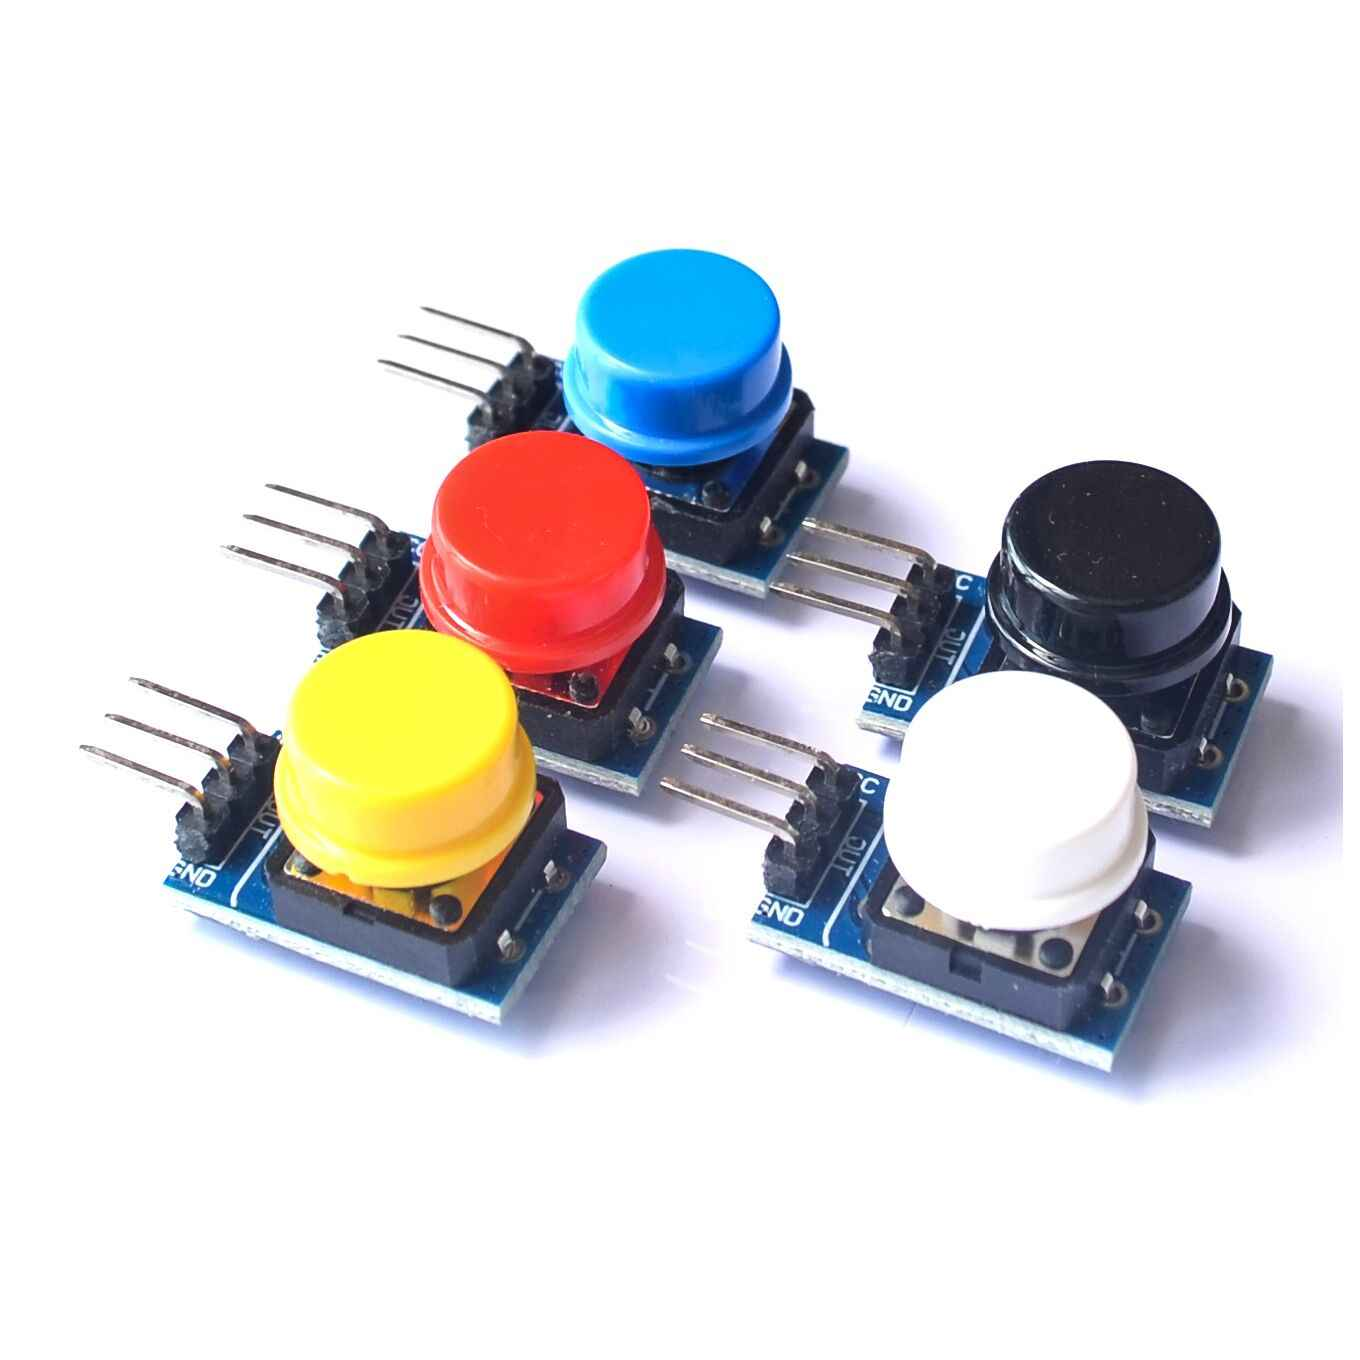 5pcs 12X12MM Big key module Big button module Light touch switch module with hat High level output for arduino or raspberry pi 3